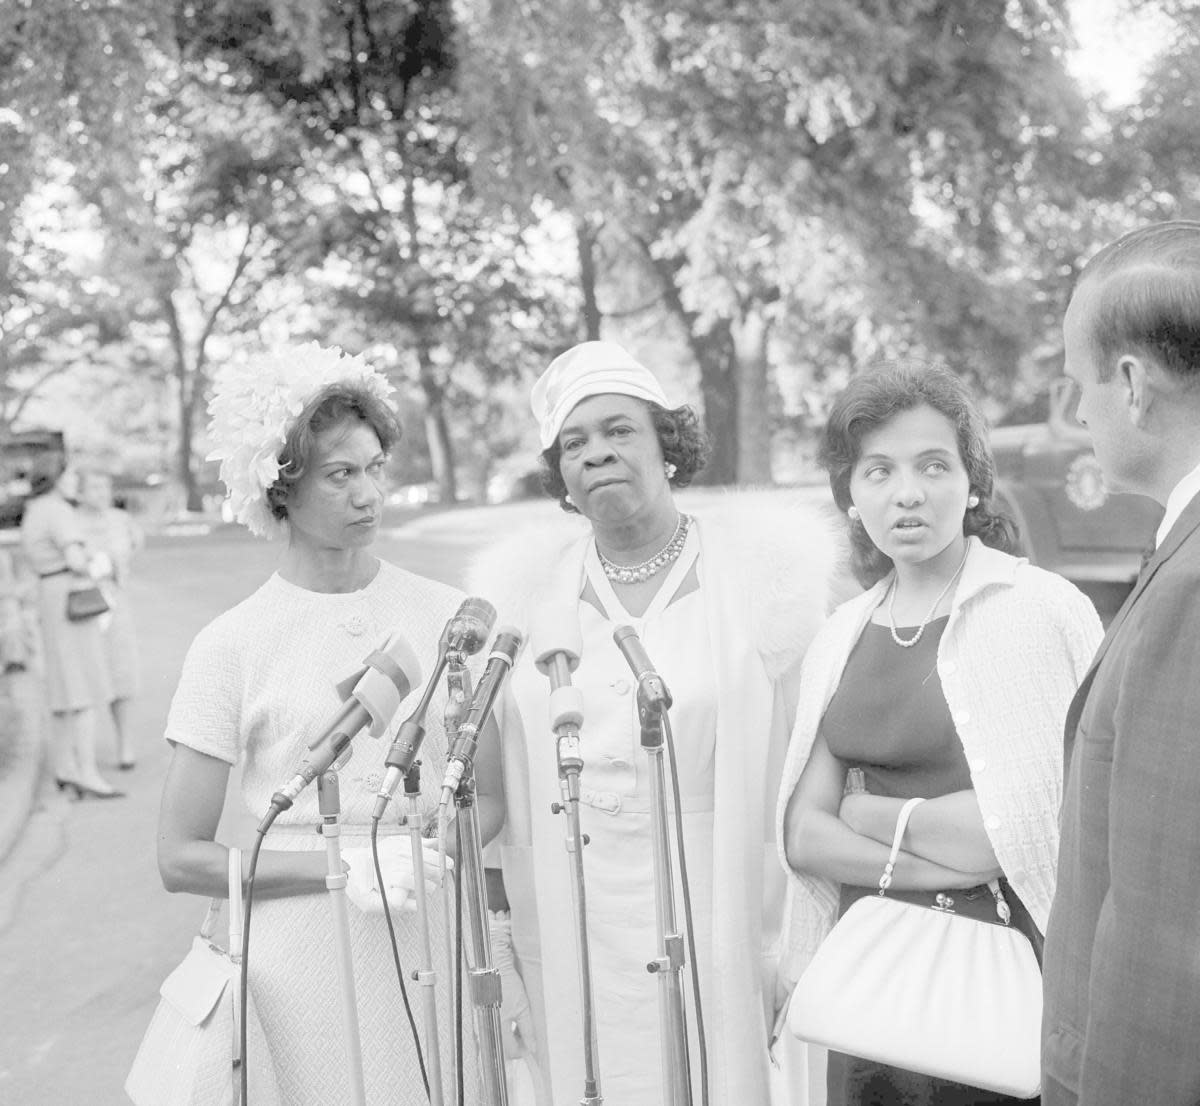 Gloria Richardson, Dr. Rosa L. Gragg and Diane Nash being interviewed after attending the White House to meet with President John F. Kennedy. He had asked 300 representatives of Women's organizations to back his civil rights program to help solve the racial problems. (Credit: Henry Burroughs/AP Photo)